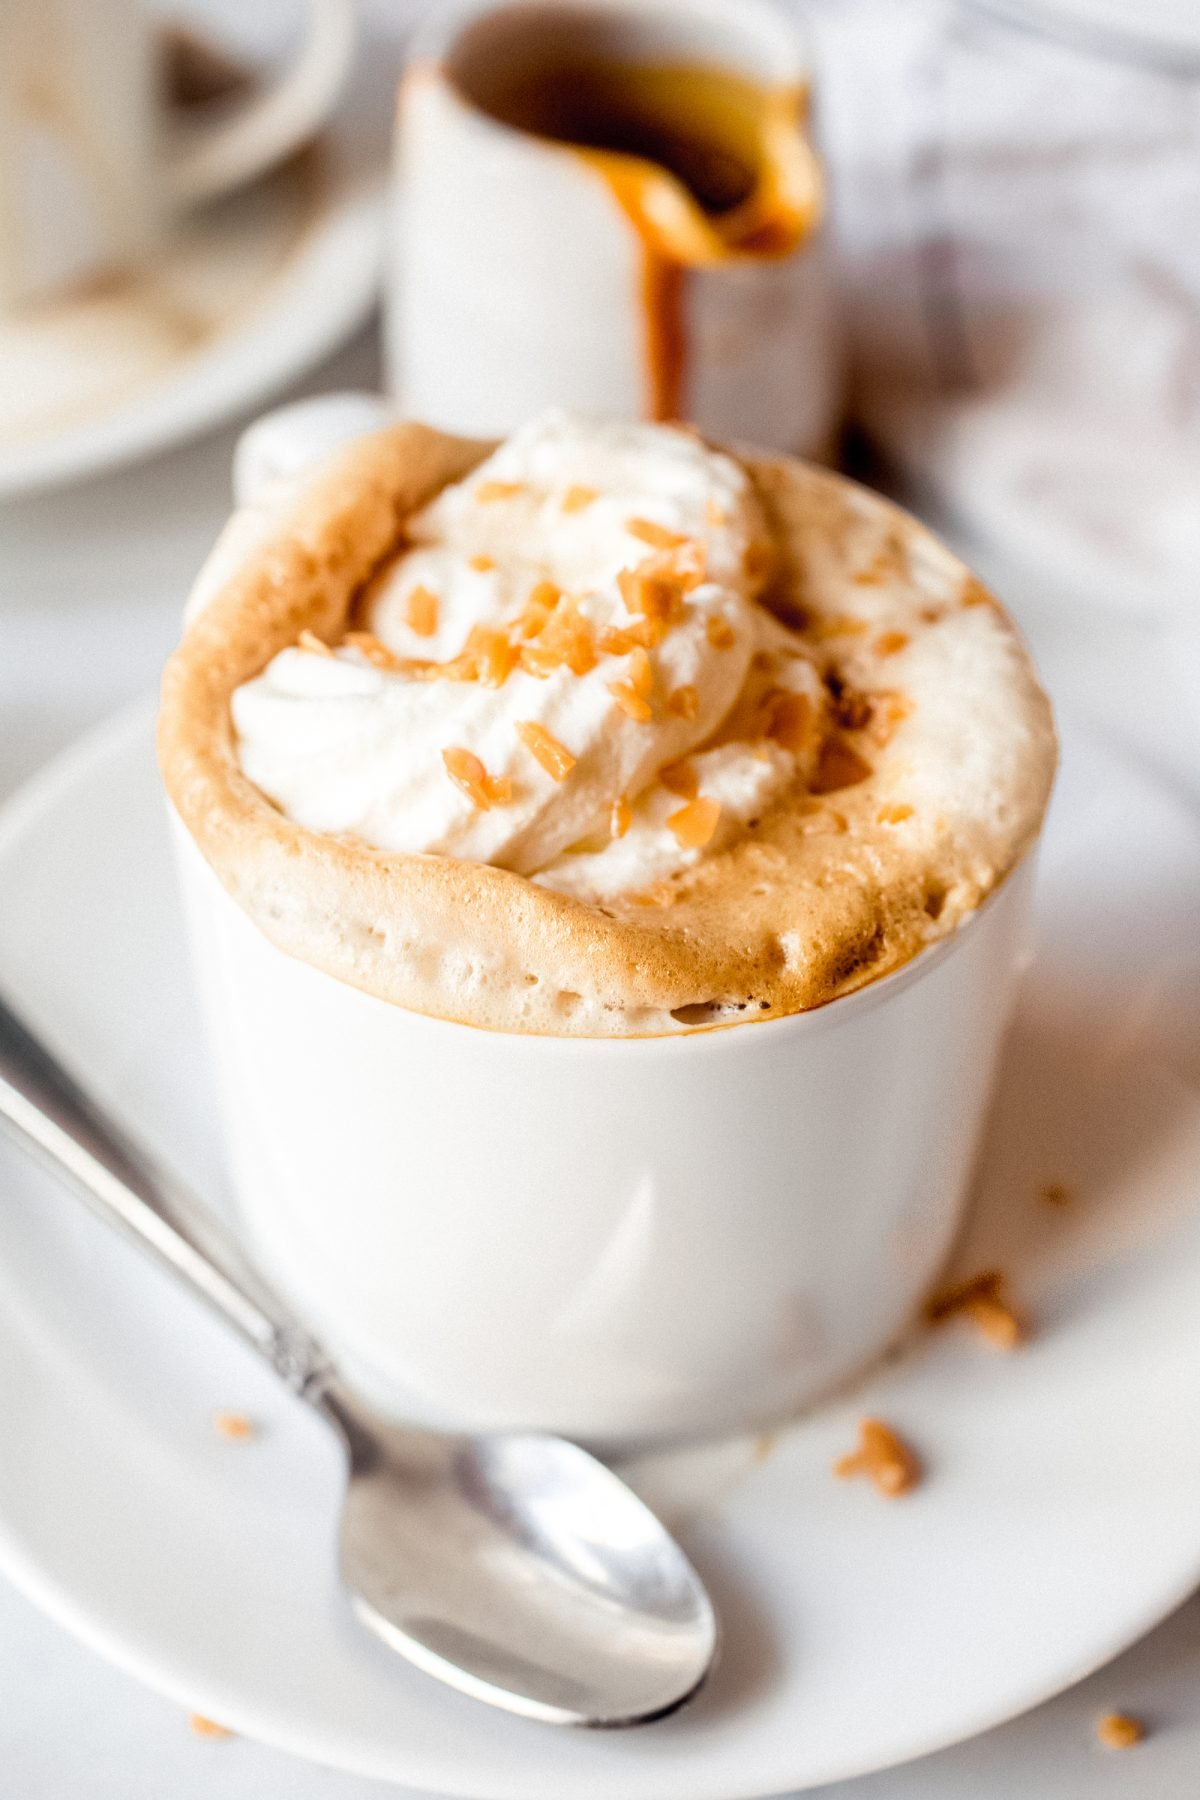 A caramel latte topped with whipped cream and caramel pieces on a white saucer with a spoon